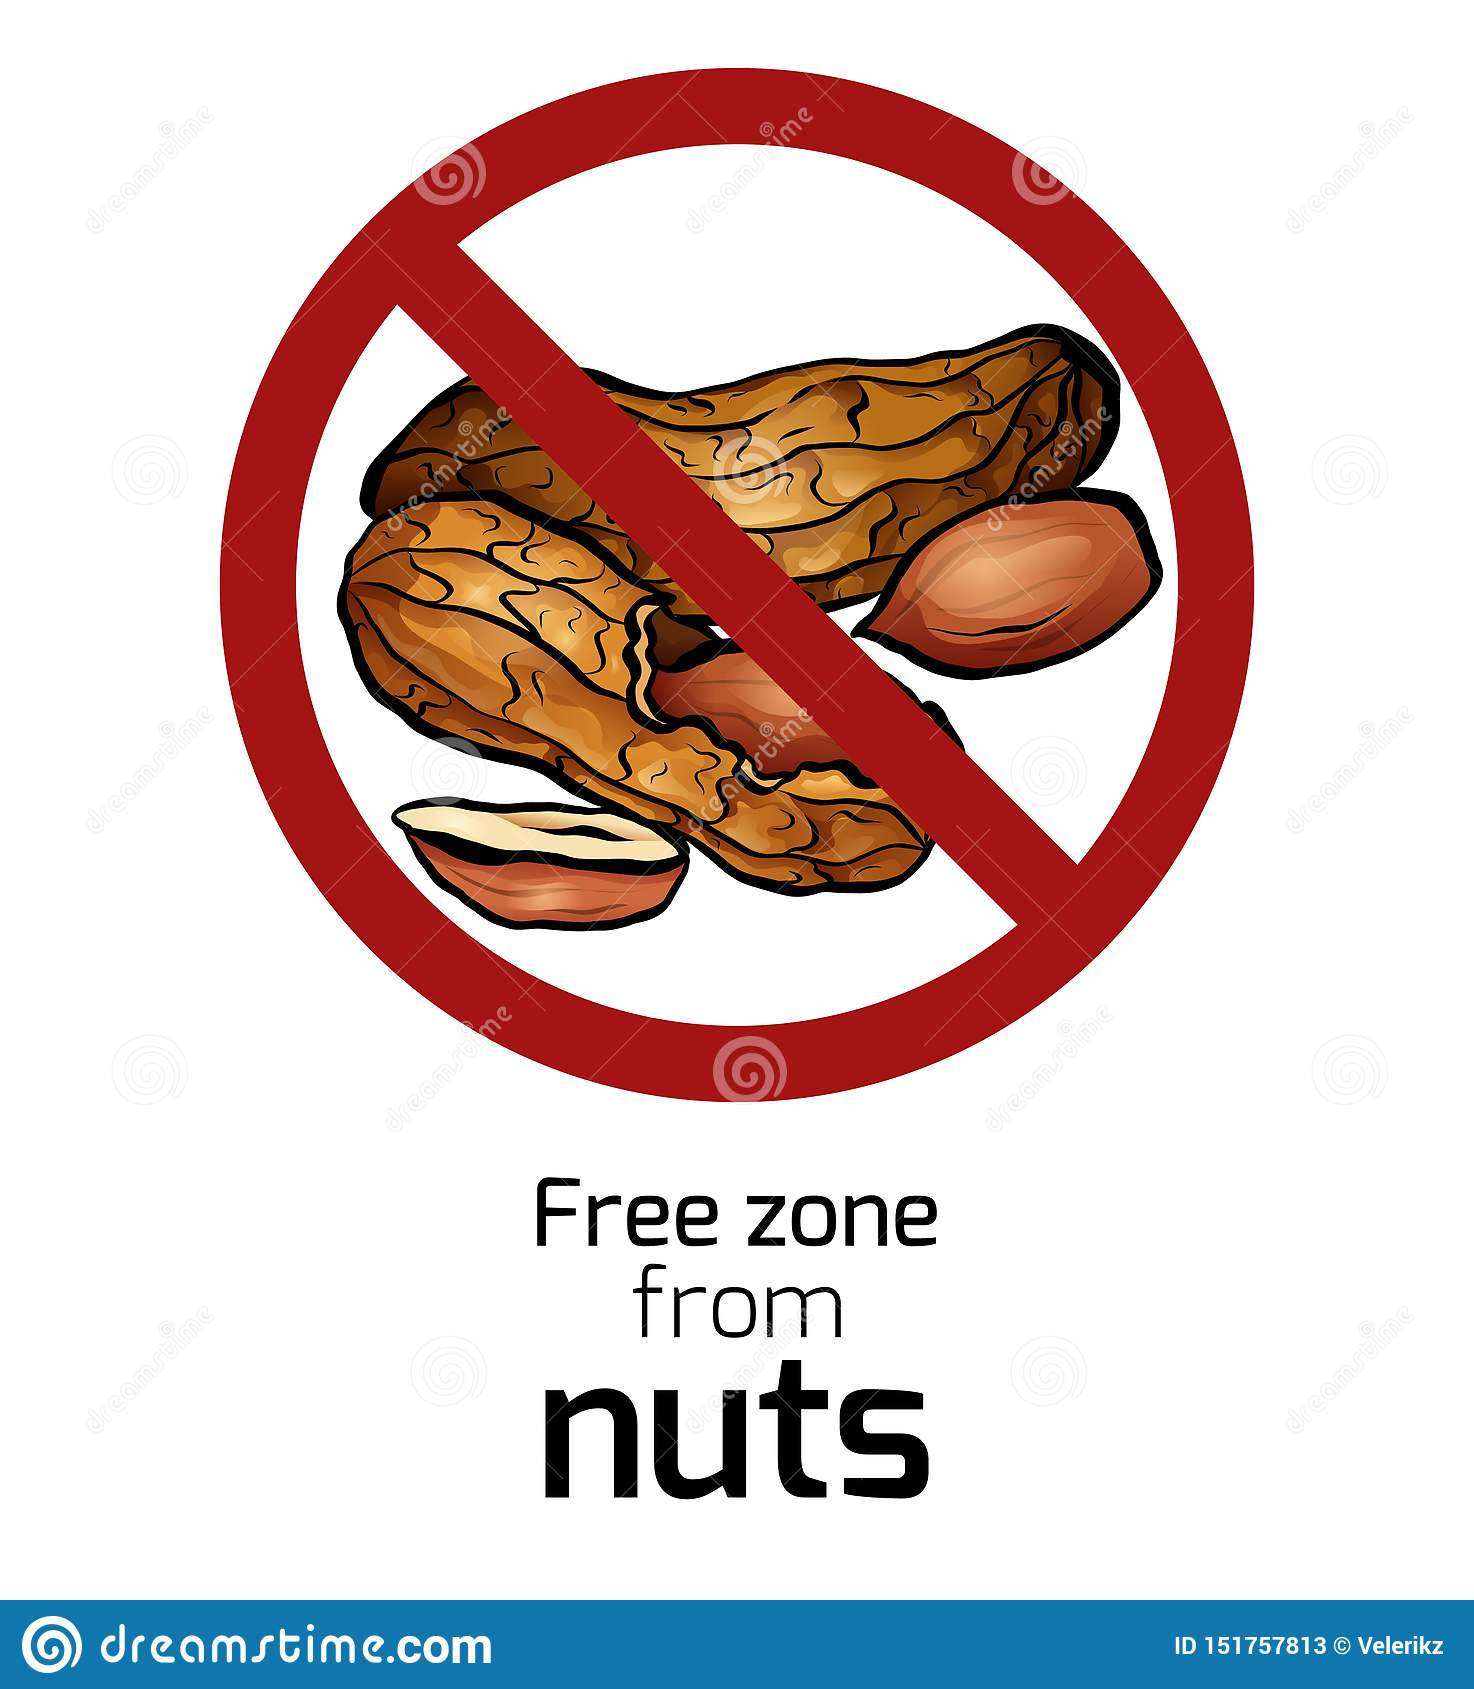 Cartoon peanut in the prohibition sign. Free zone from nuts. Ban on allergens. Allergy Alert. Badges with forbiddance